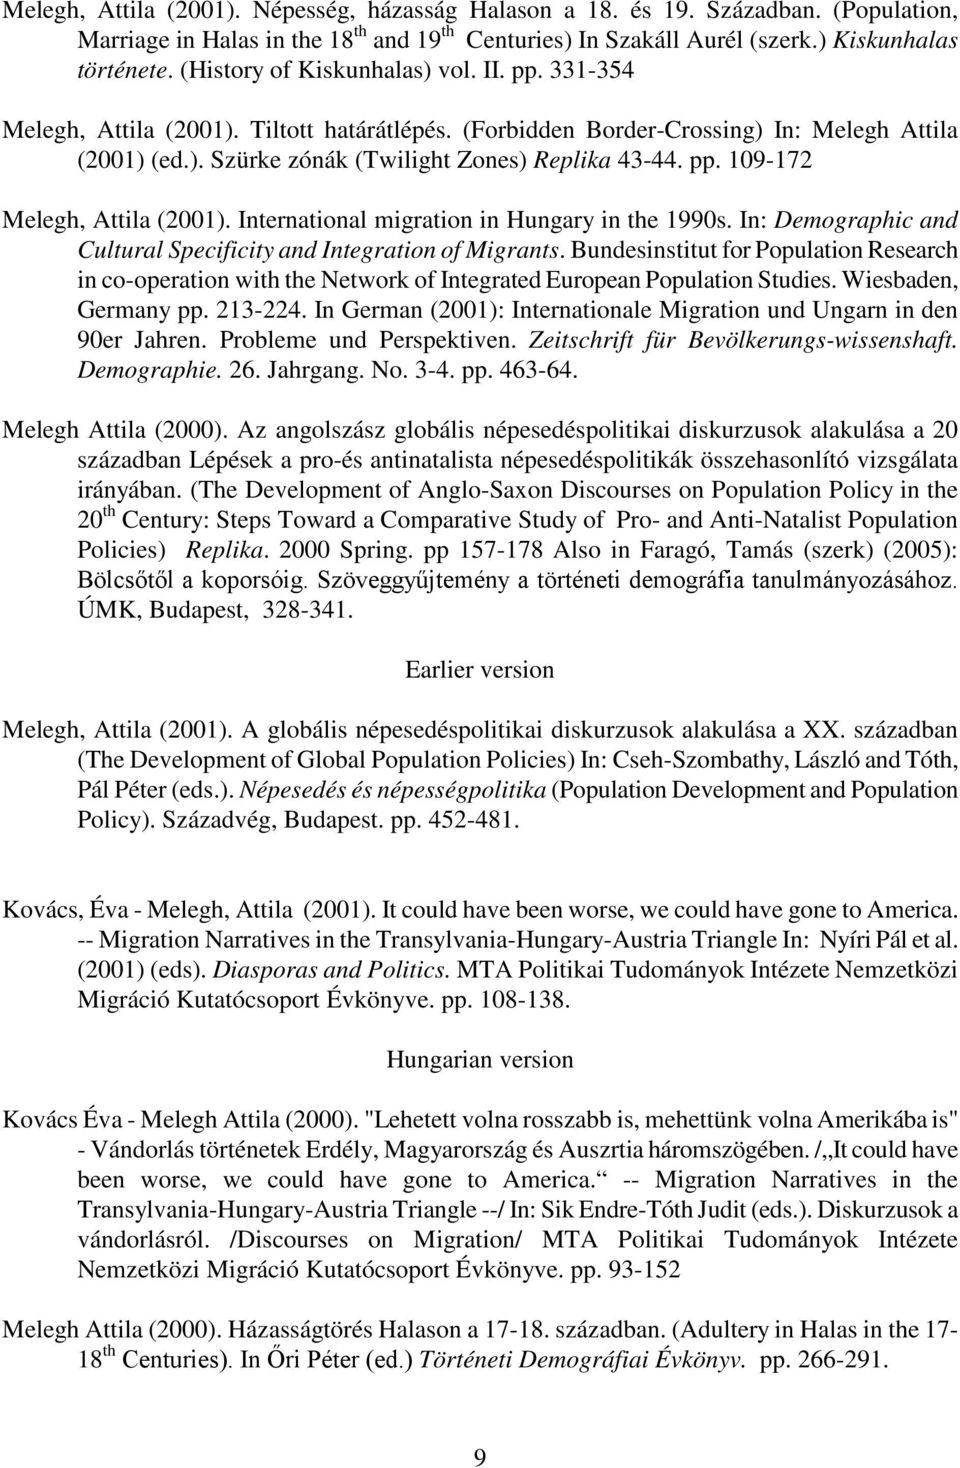 International migration in Hungary in the 1990s. In: Demographic and Cultural Specificity and Integration of Migrants.